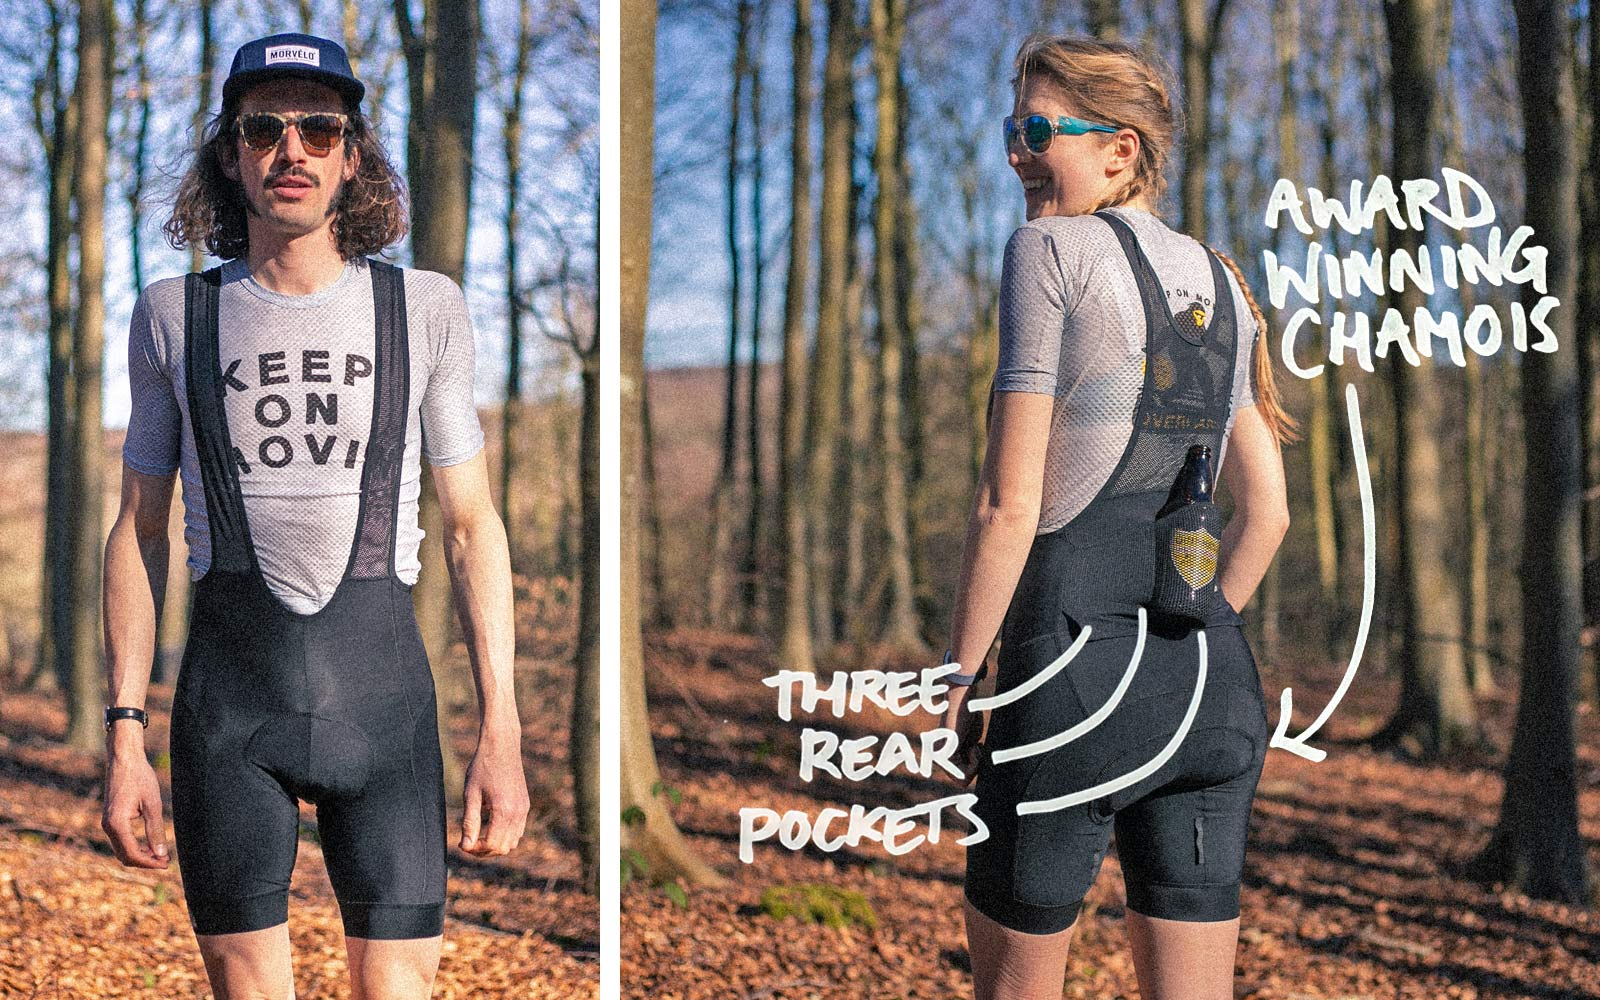 Morvelo Morvélo Overland all-road gravel cycling kit on-road & off-road casual performance cycling clothing